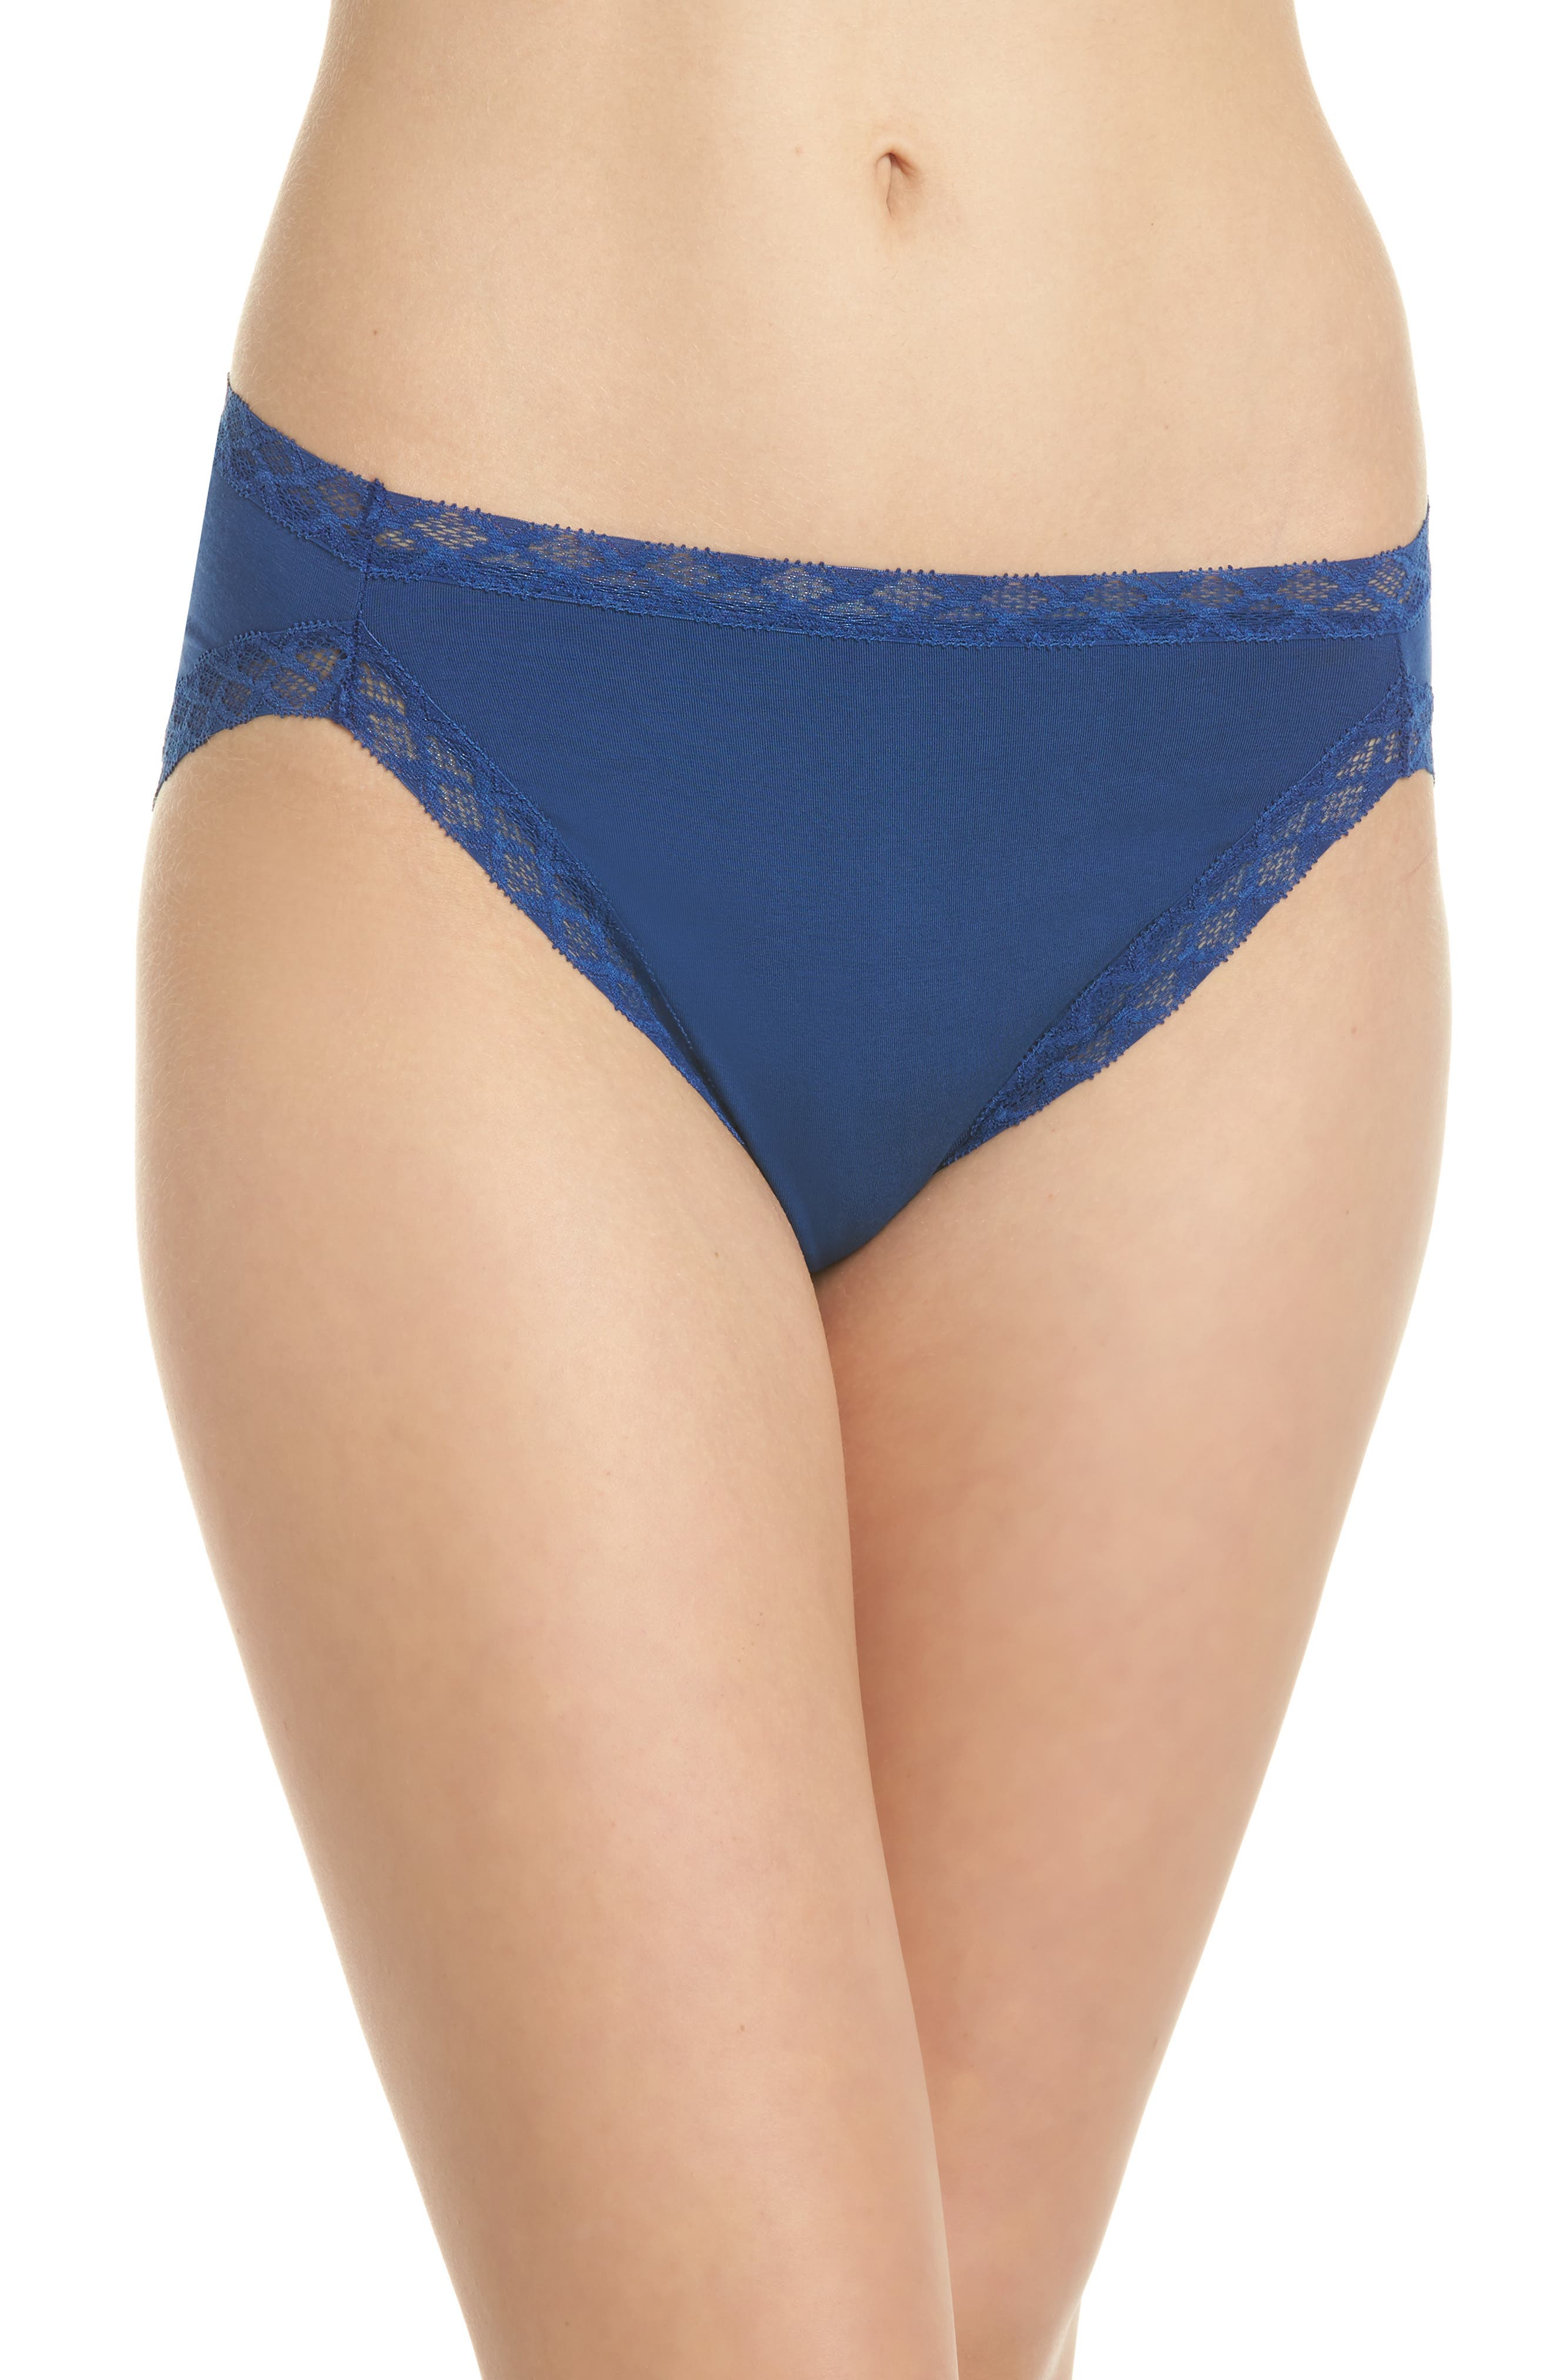 Alternate Image 1 Selected - Natori Bliss French Cut Briefs (3 for $45)